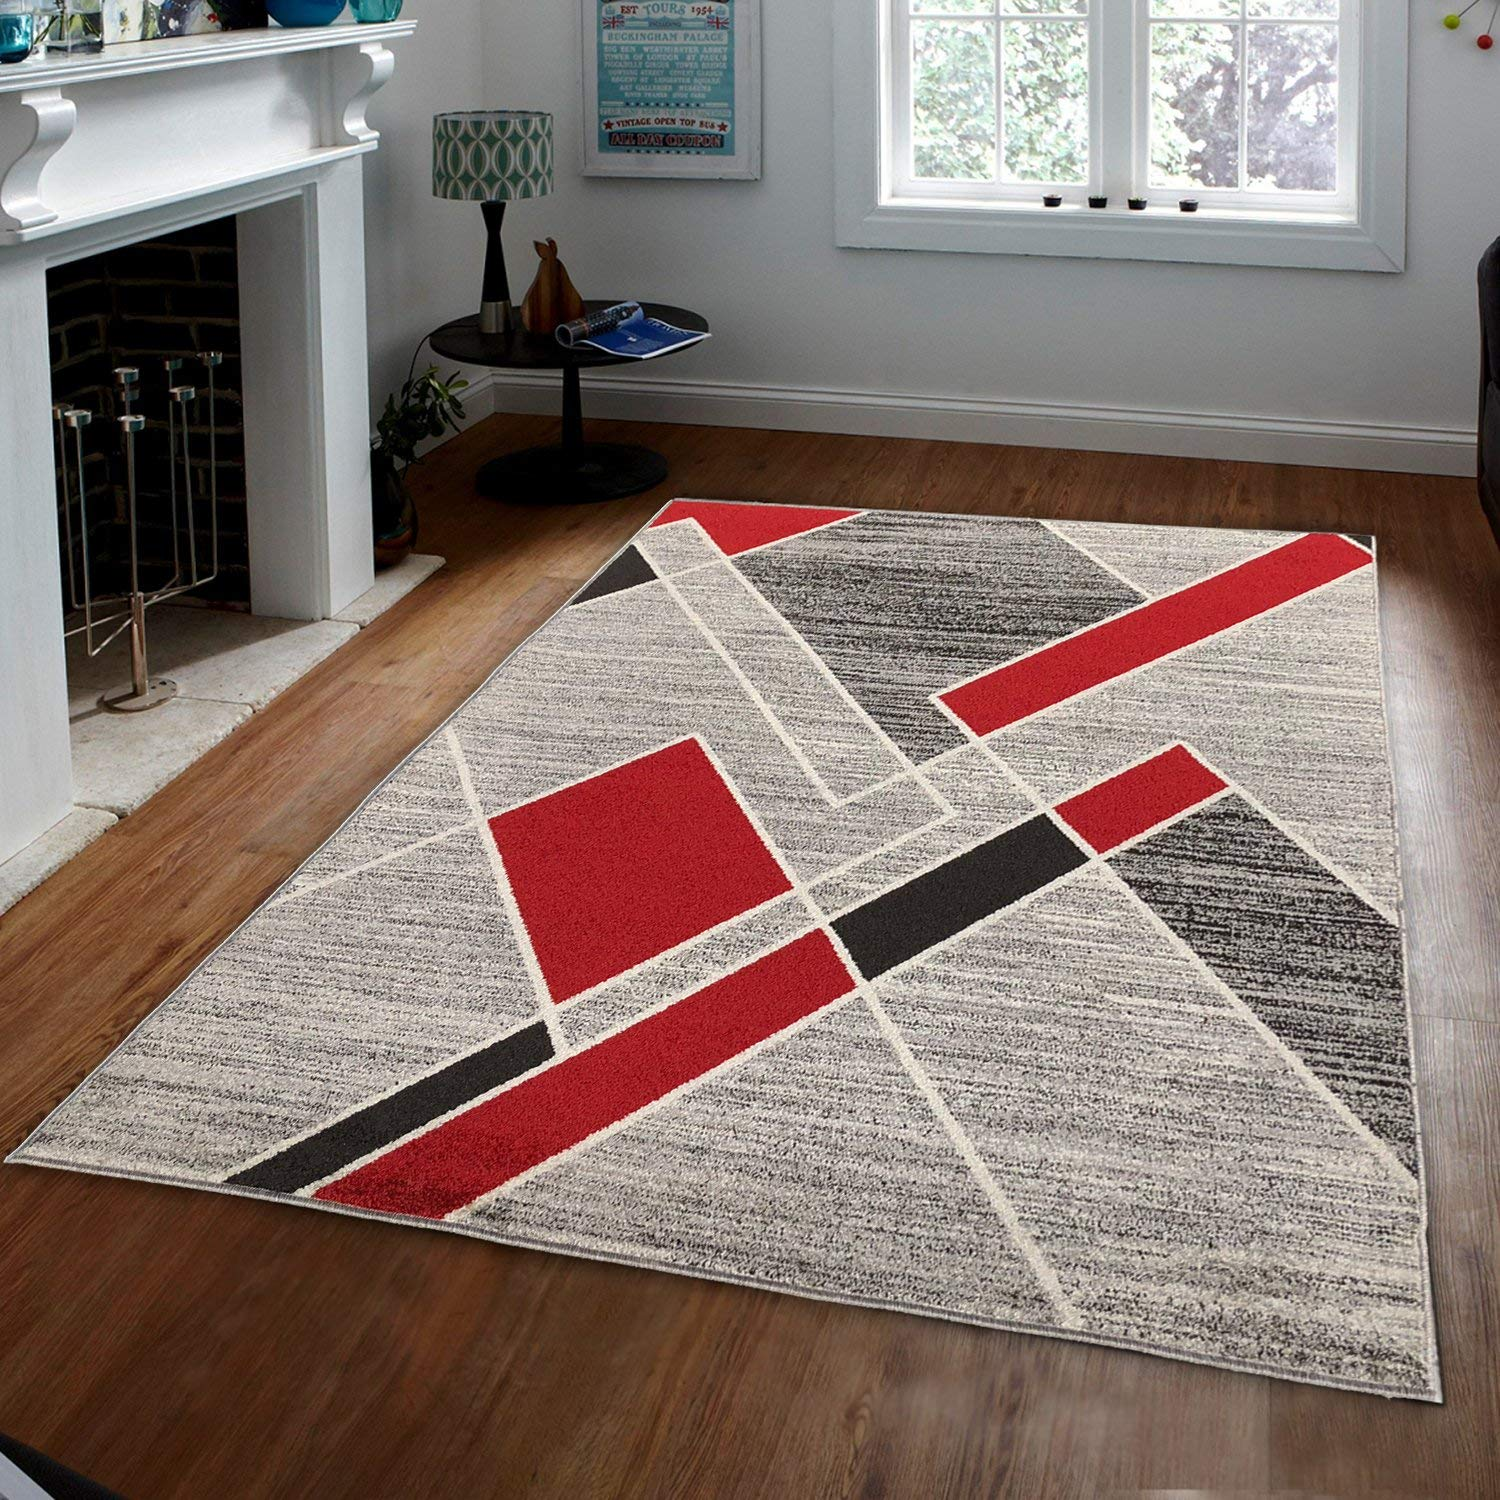 Area Rugs And Runners For Home, Office And